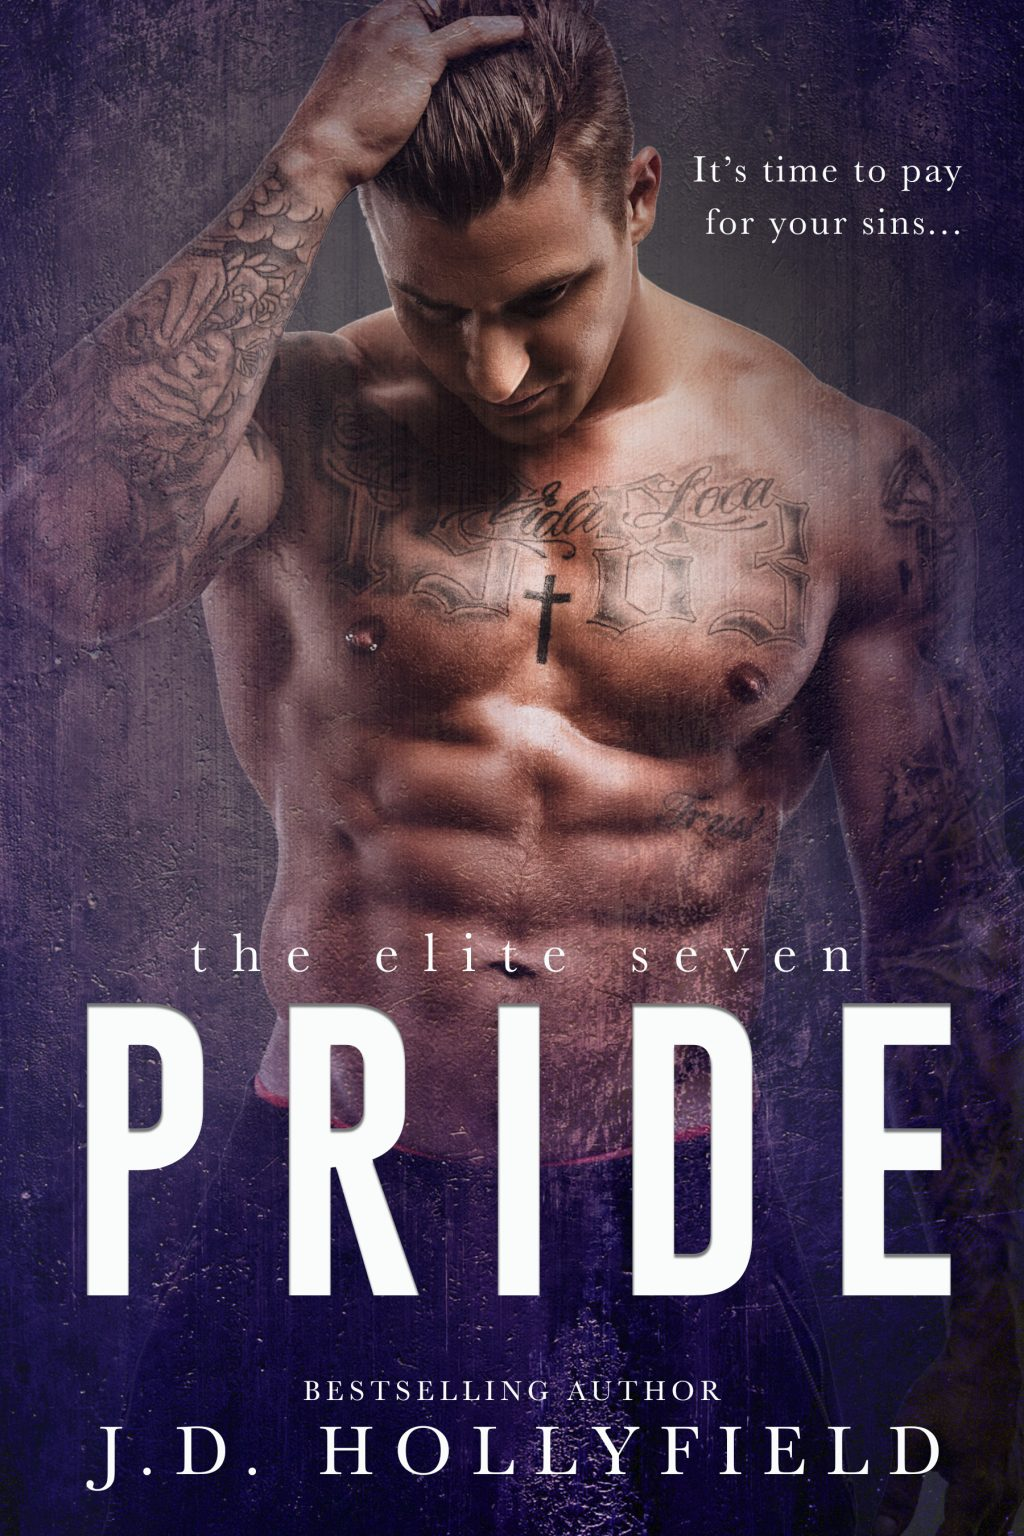 Pride (The Elite Seven #2) by J.D. Hollyfield